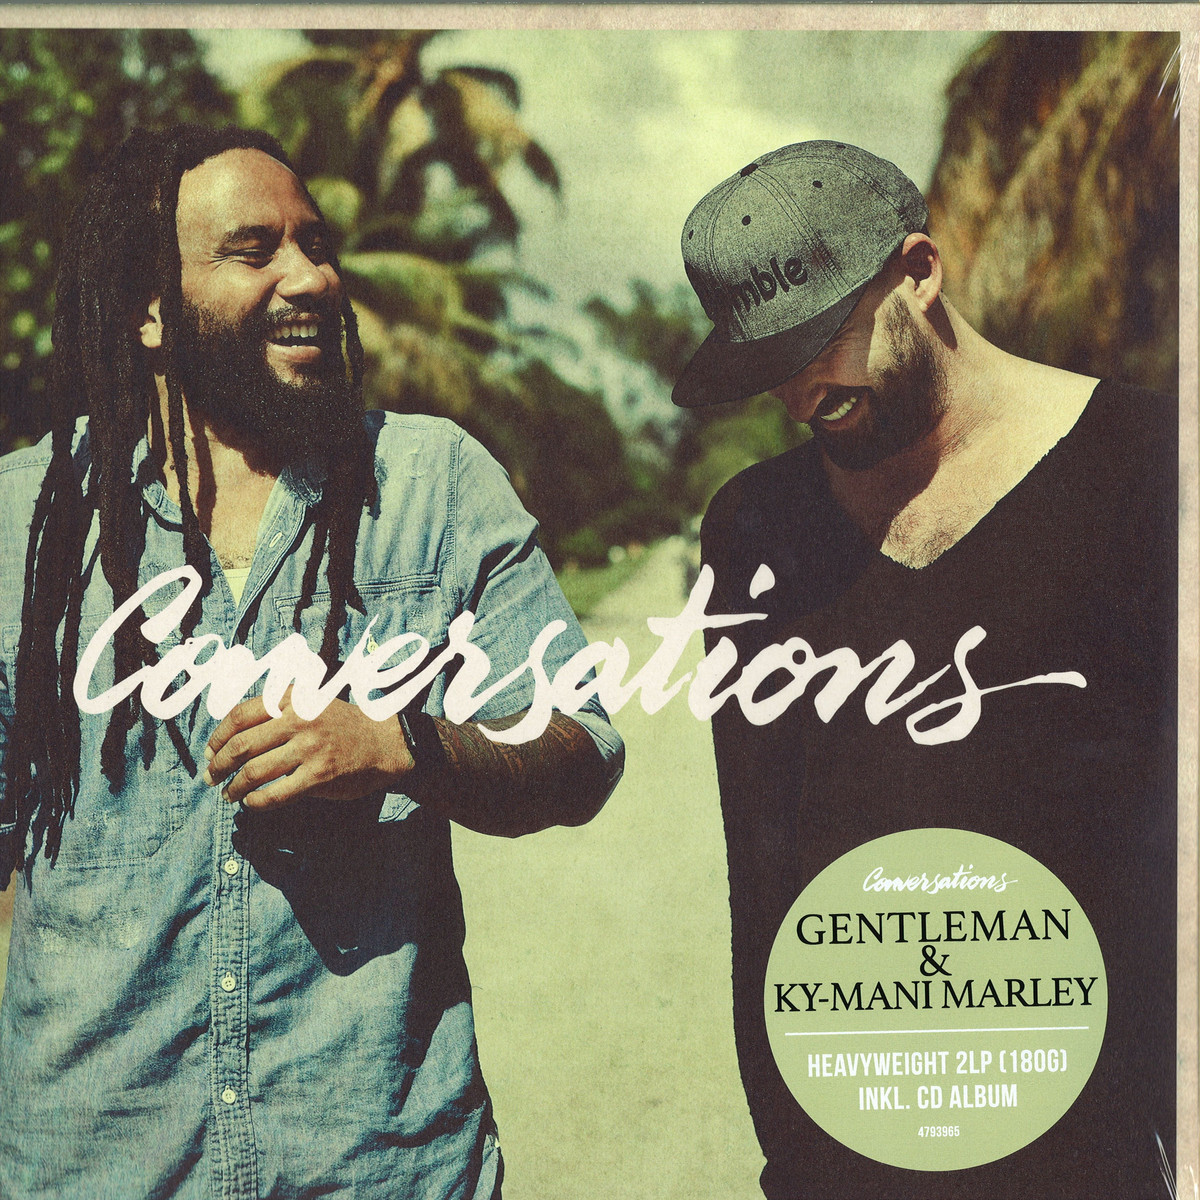 Ky Mani Marley Image Quotes: Gentleman & Ky-mani Marley